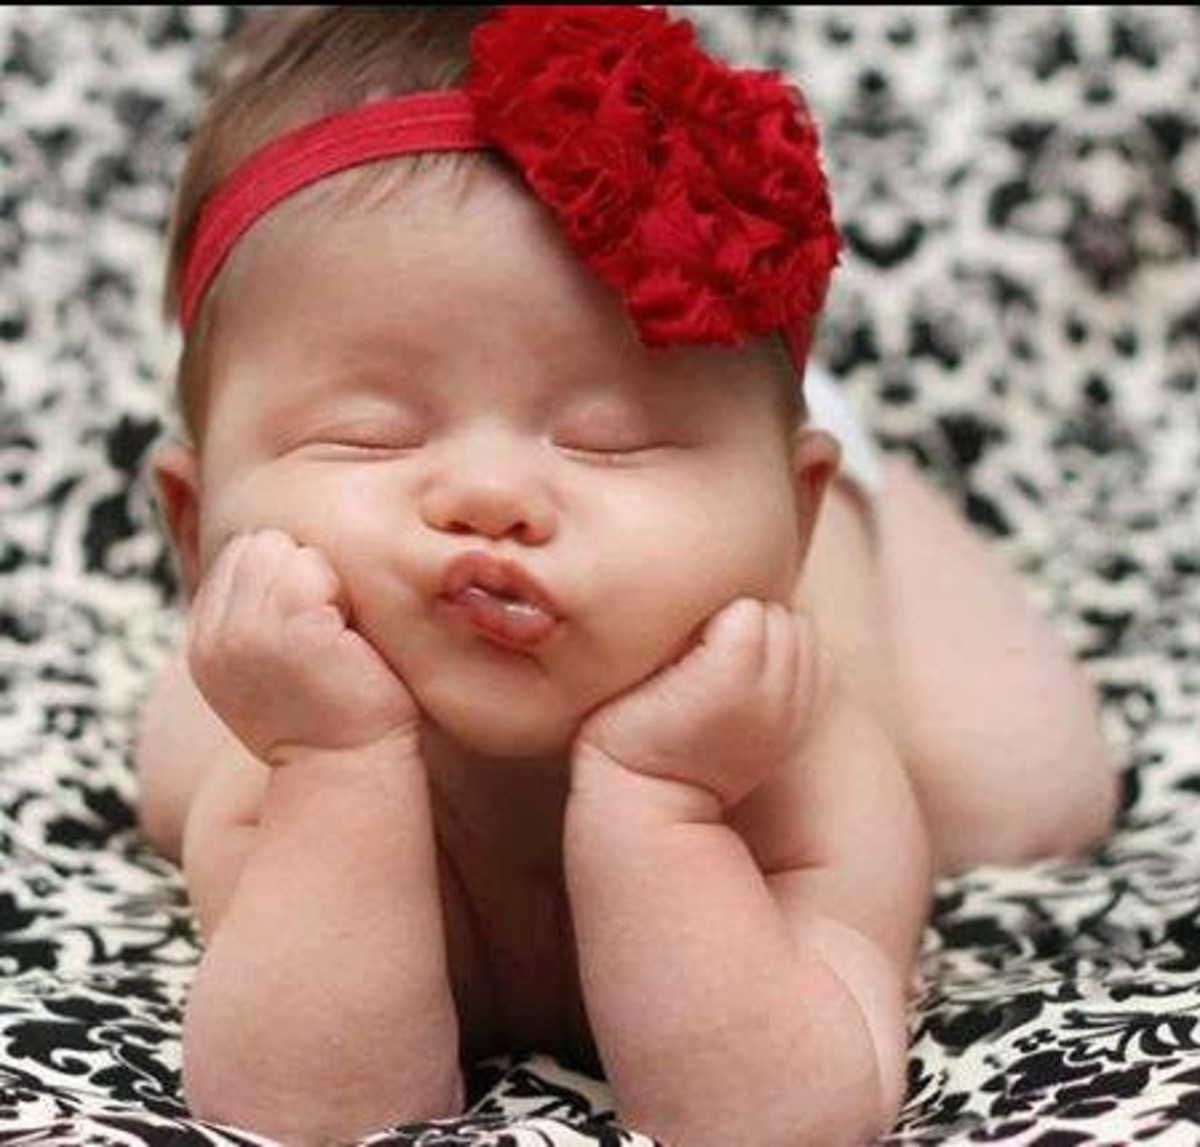 Babies are adorable but this isn't me! :)